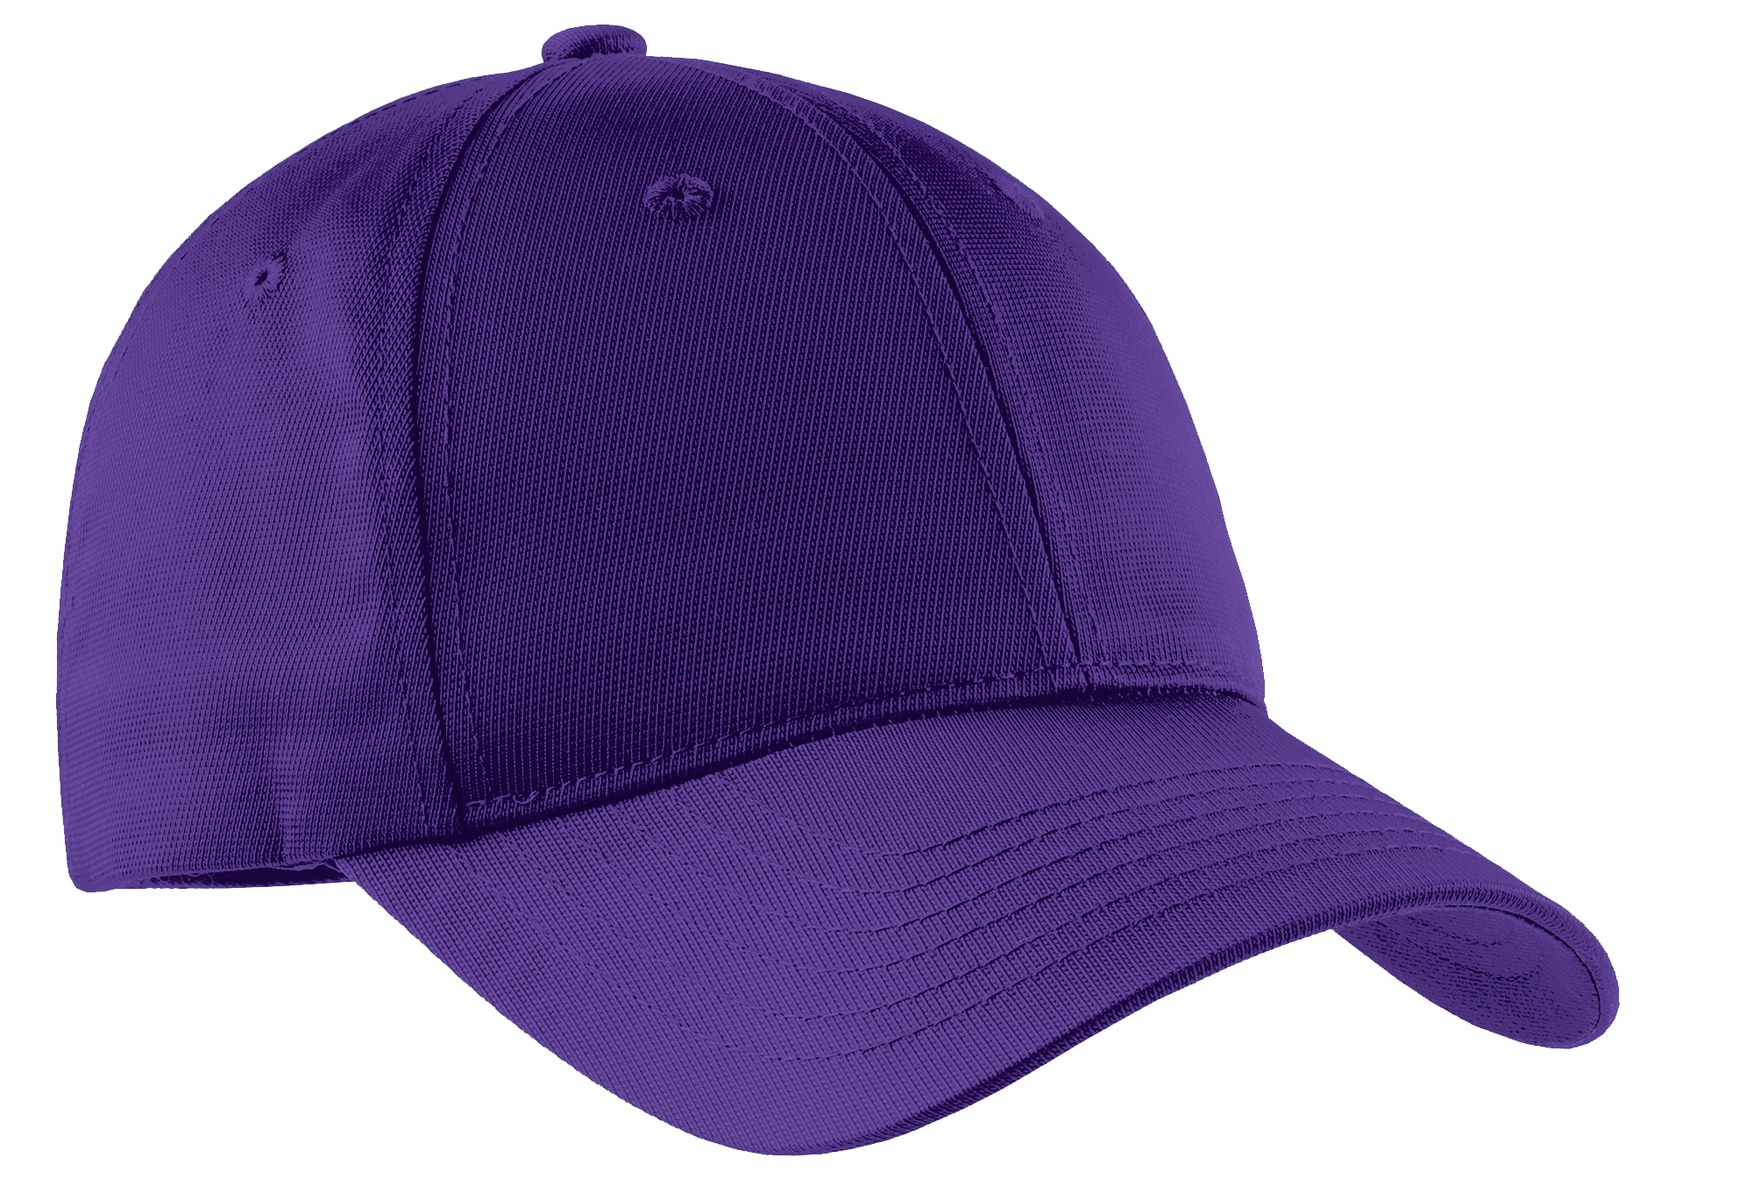 Sport-Tek ®  Dry Zone ®  Nylon Cap. STC10 - Purple